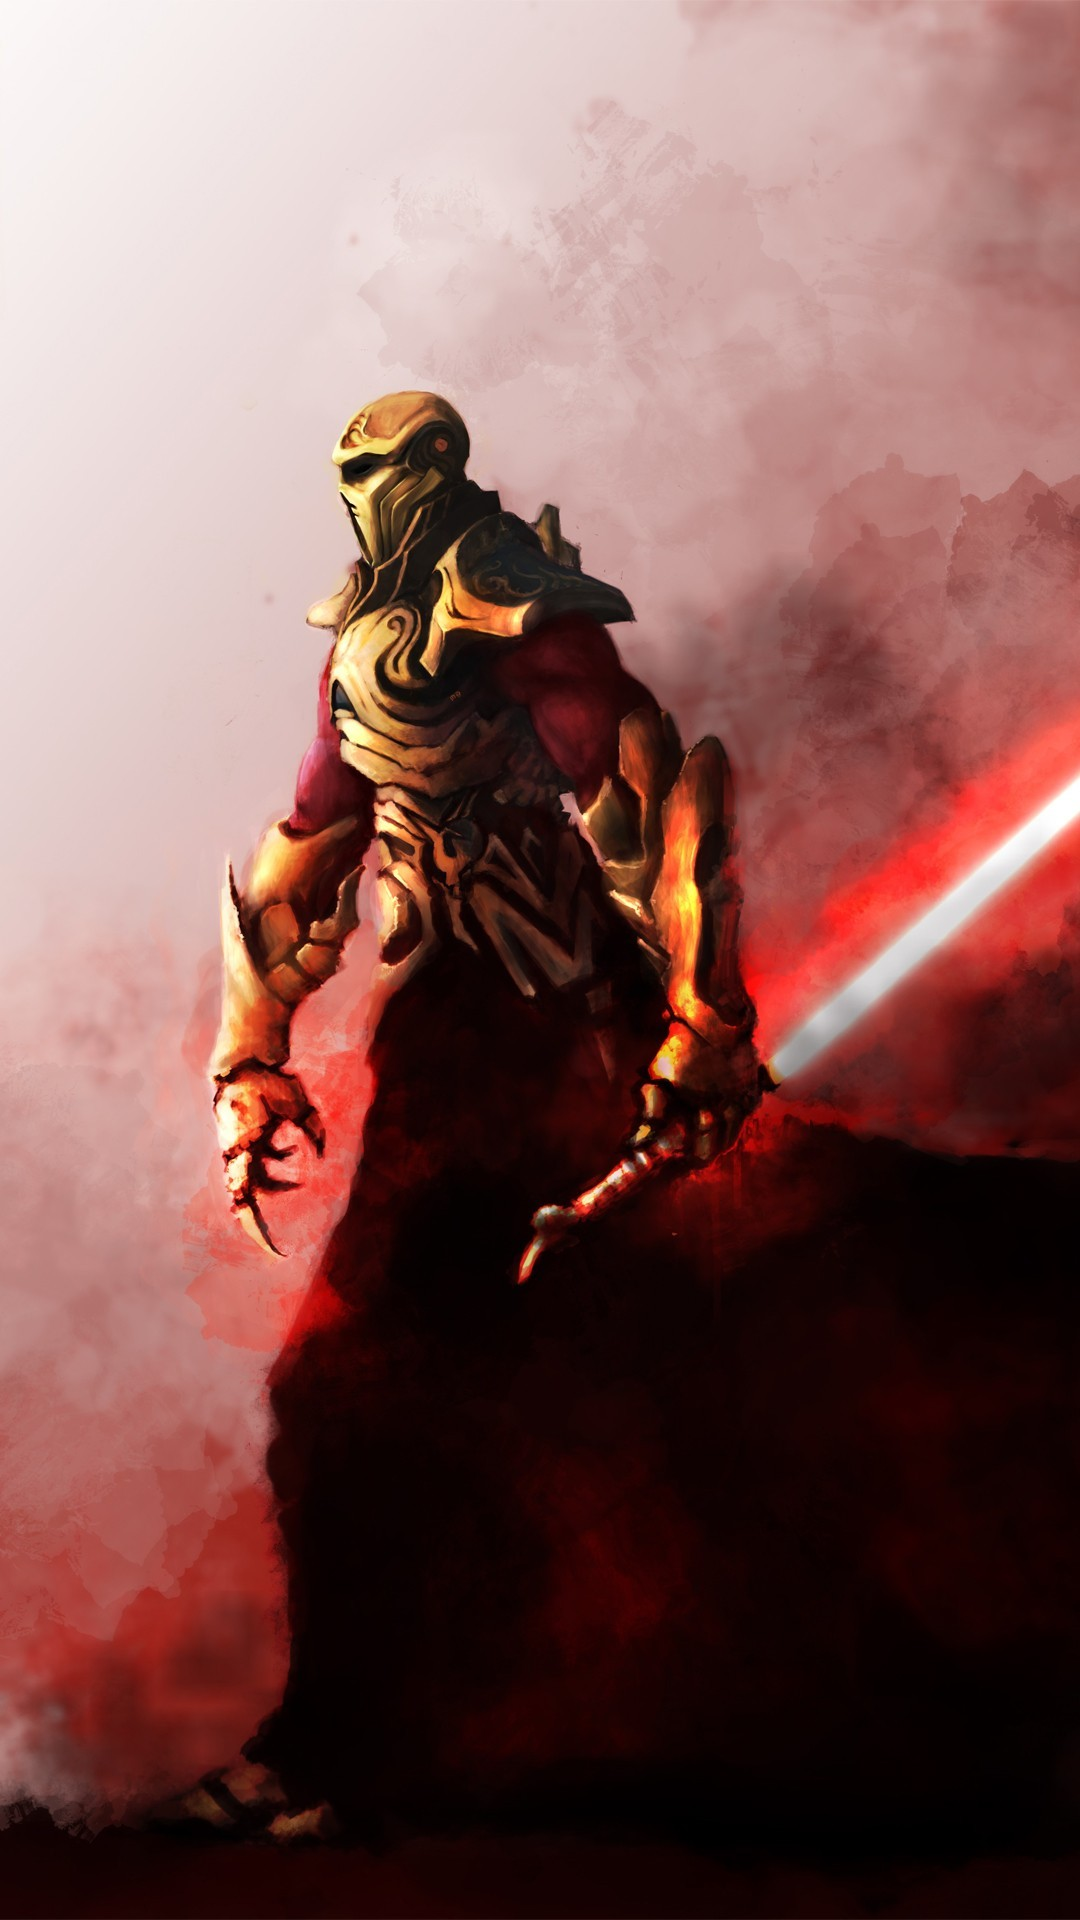 Sith warrior - Star Wars - The Old Republic Mobile Wallpaper 5331